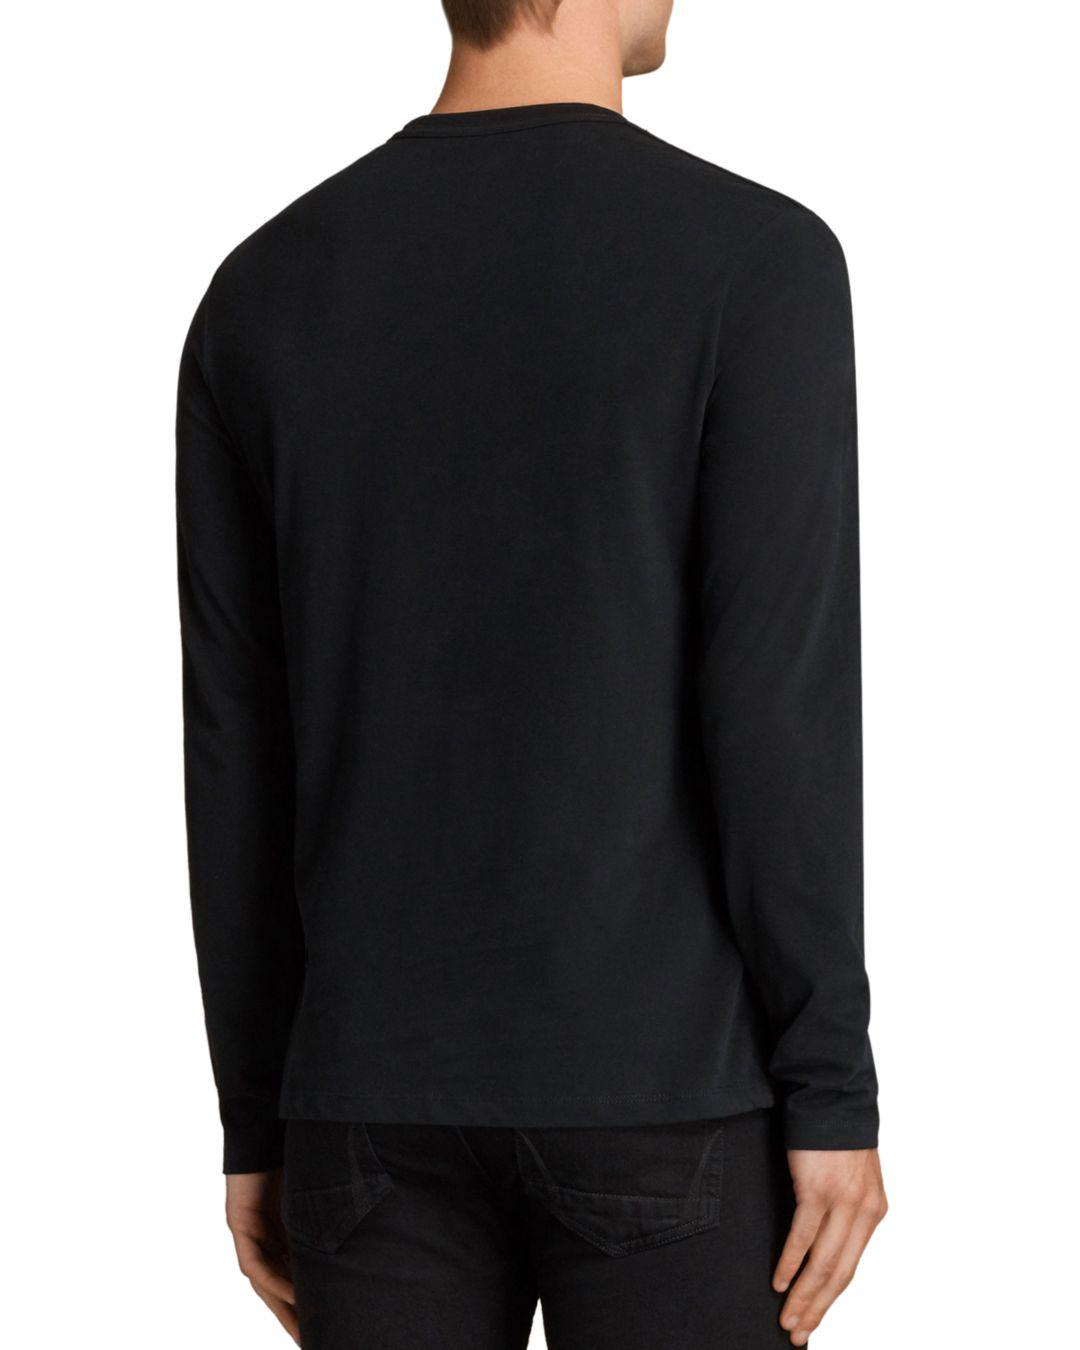 b5a03cd2 AllSaints Brace Long Sleeve Tee in Black for Men - Save 78% - Lyst